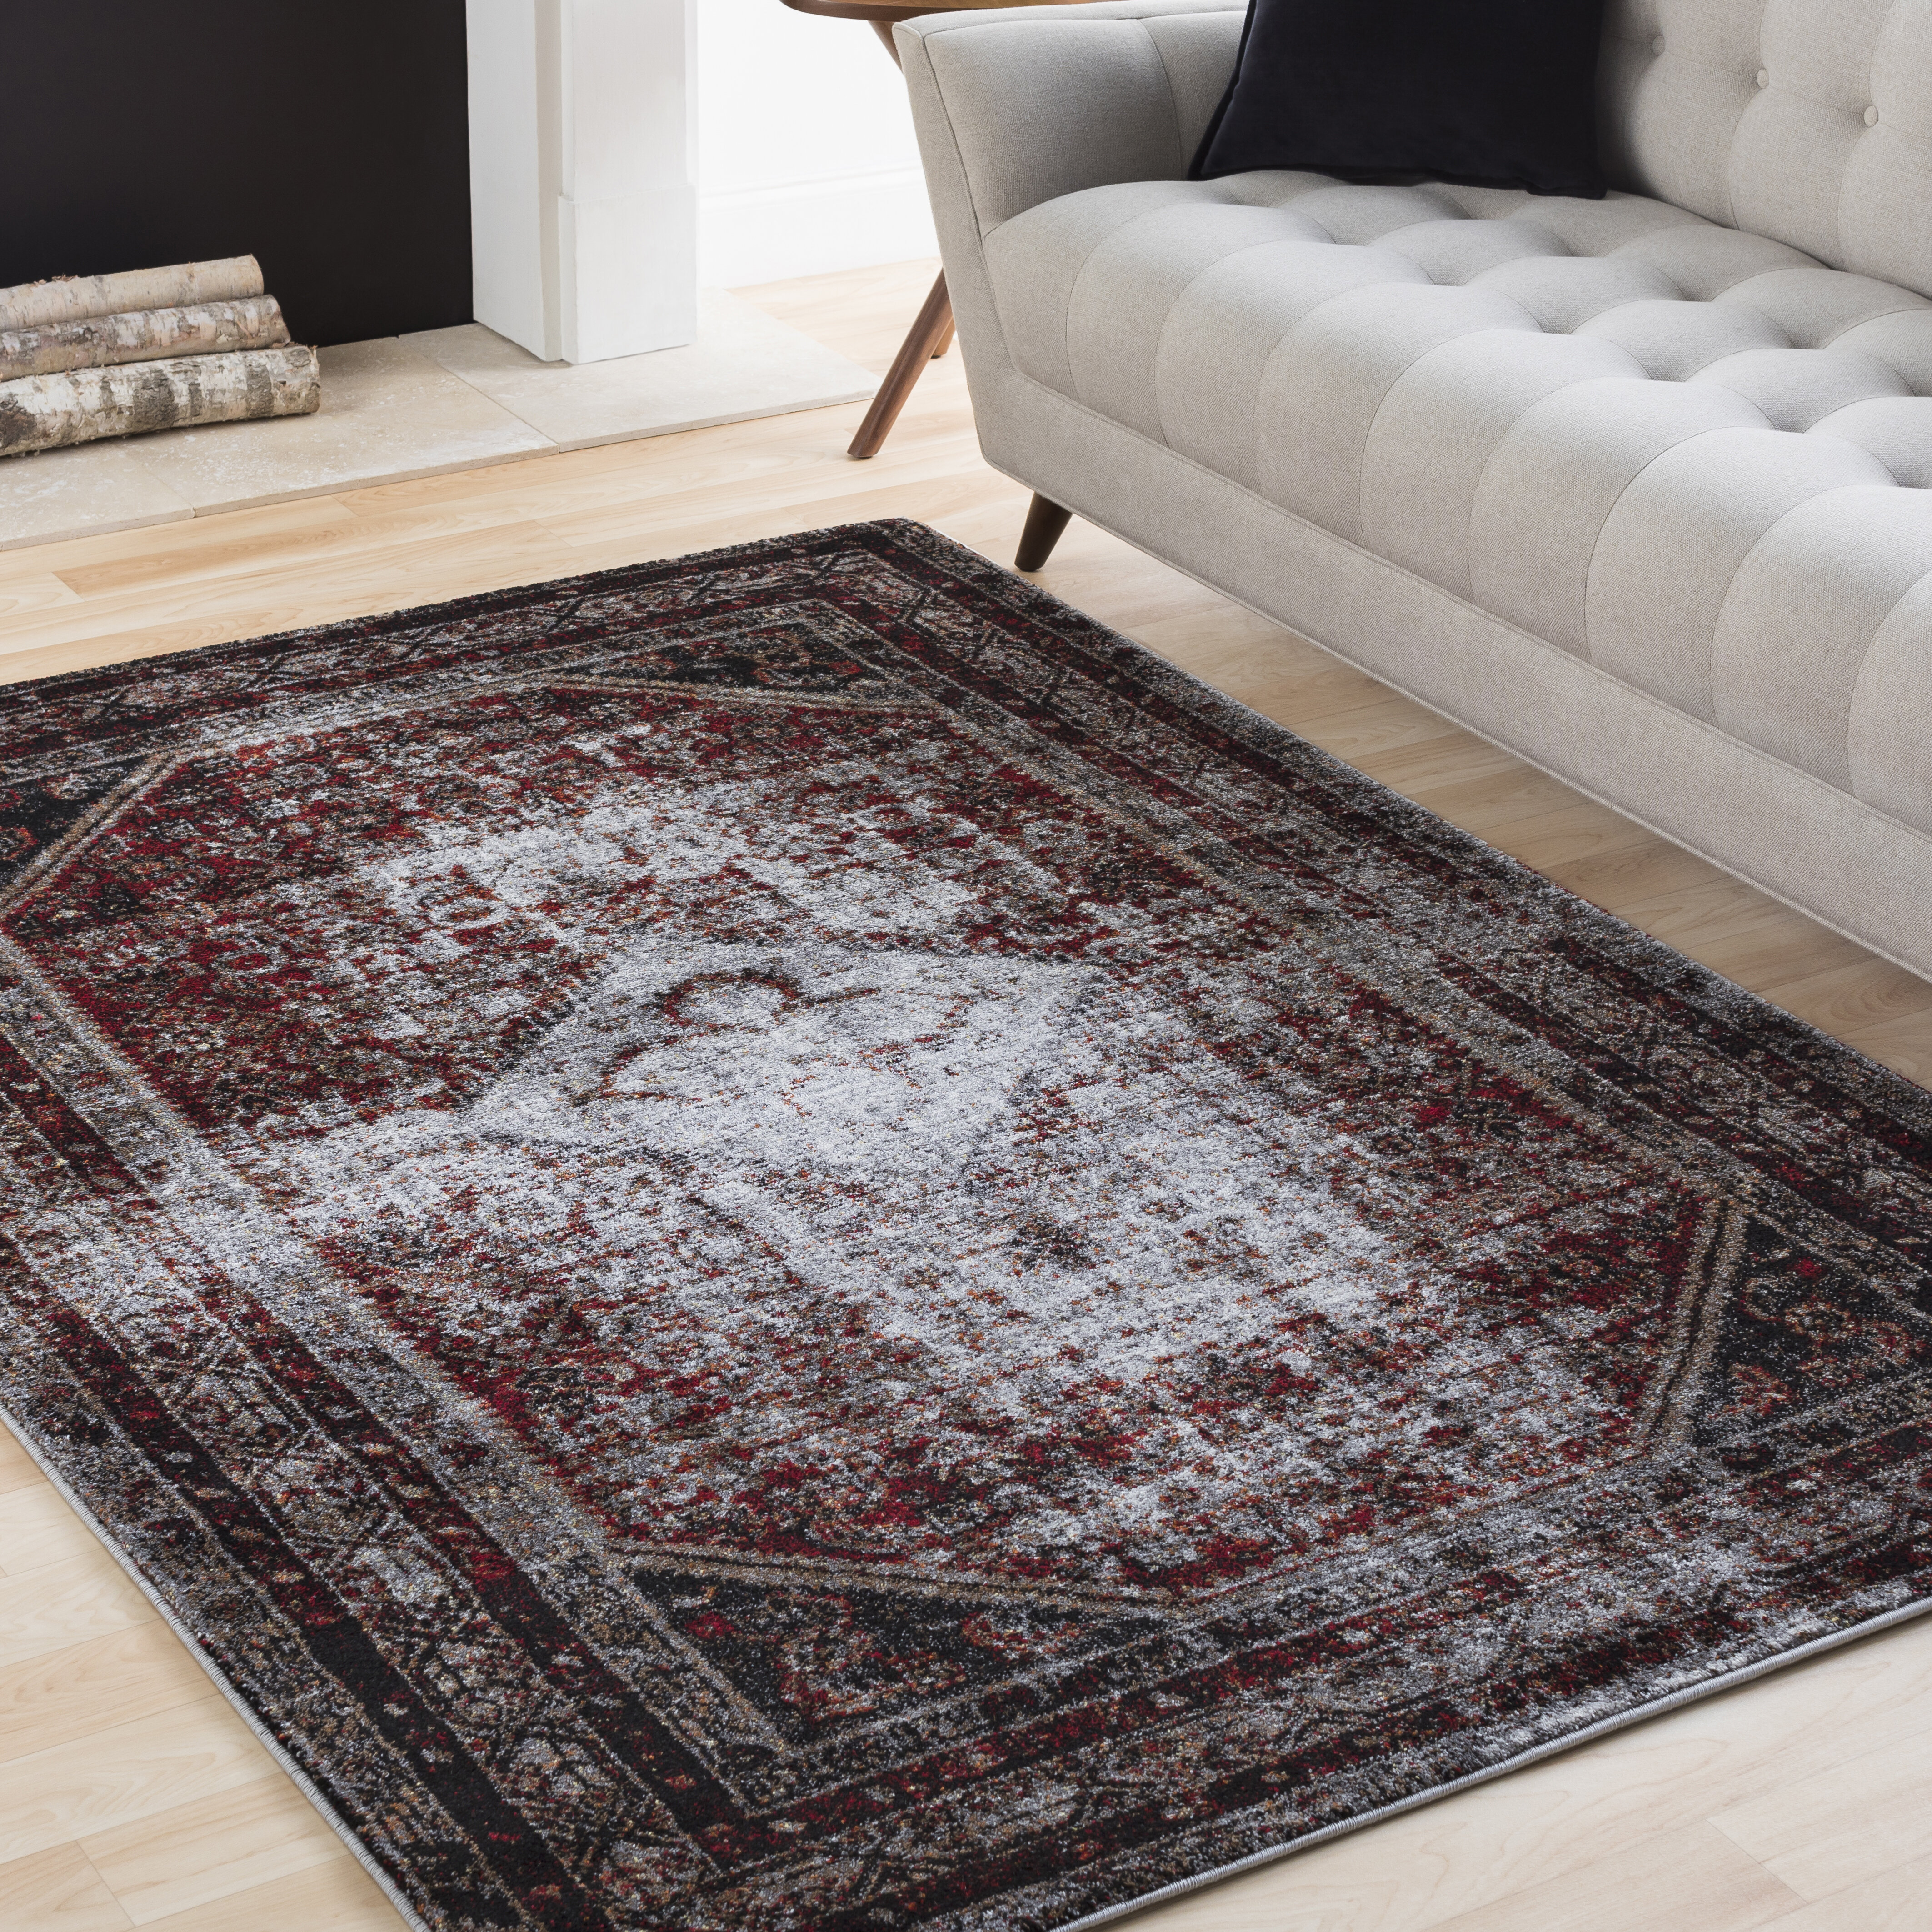 living geometric jaipur rugs area black by light gray prima indoor design rug outdoor products